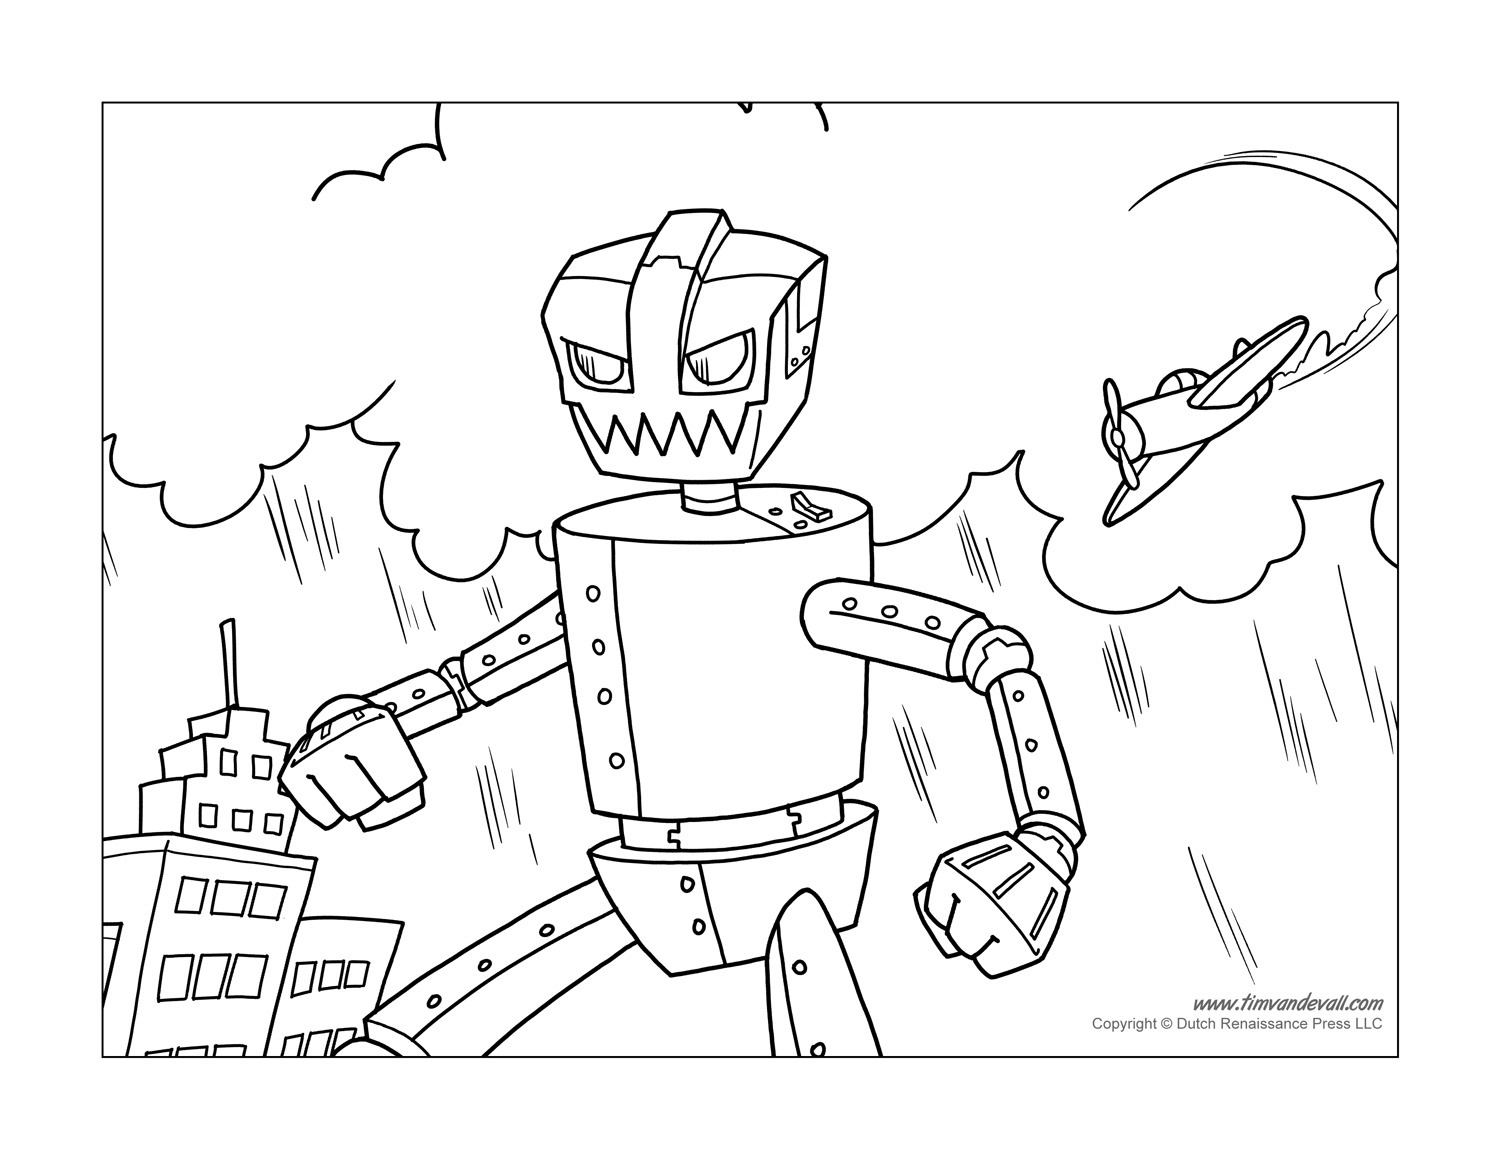 Printable Robot Coloring Pages | Coloring Pages for Kids